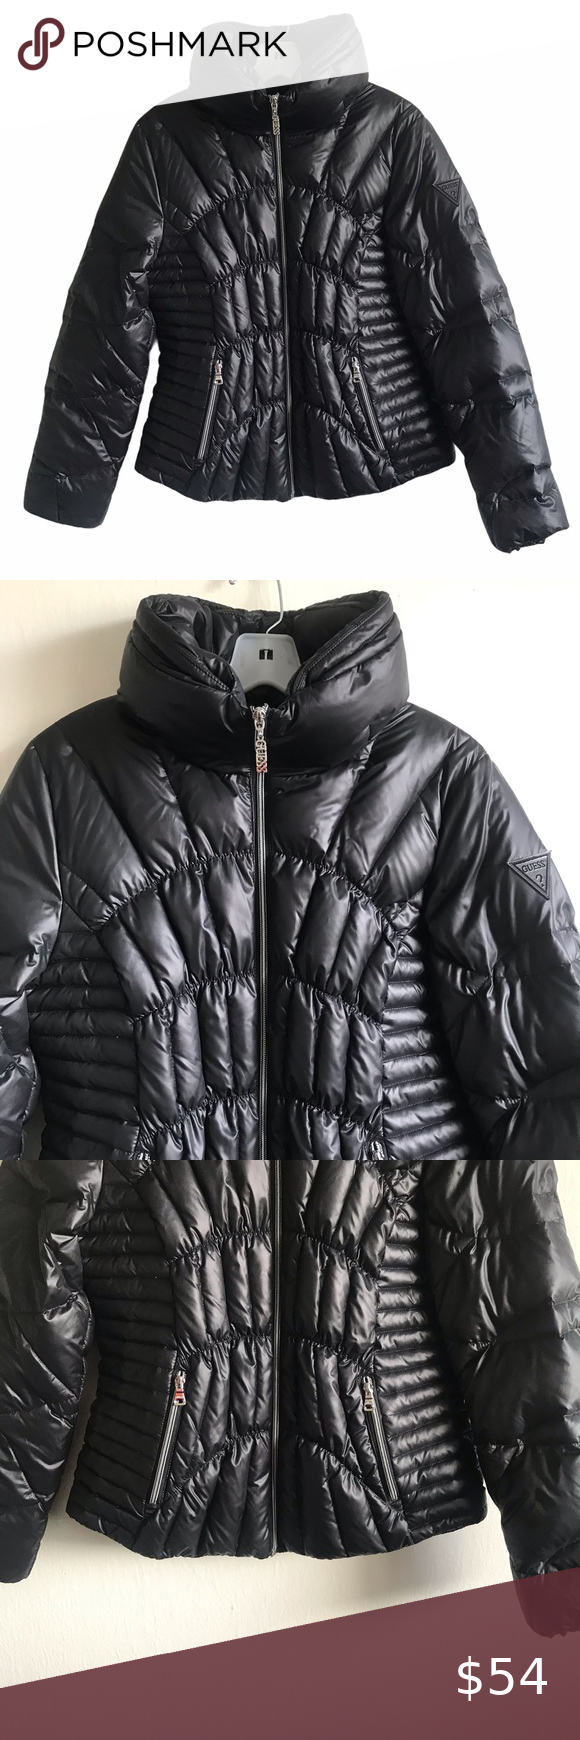 Guess Los Angeles Quilted Black Puffer Jacket Gently Used Please See Pics To Look At Neck Line Size M 20 A Black Puffer Jacket Black Puffer Clothes Design [ 1740 x 580 Pixel ]